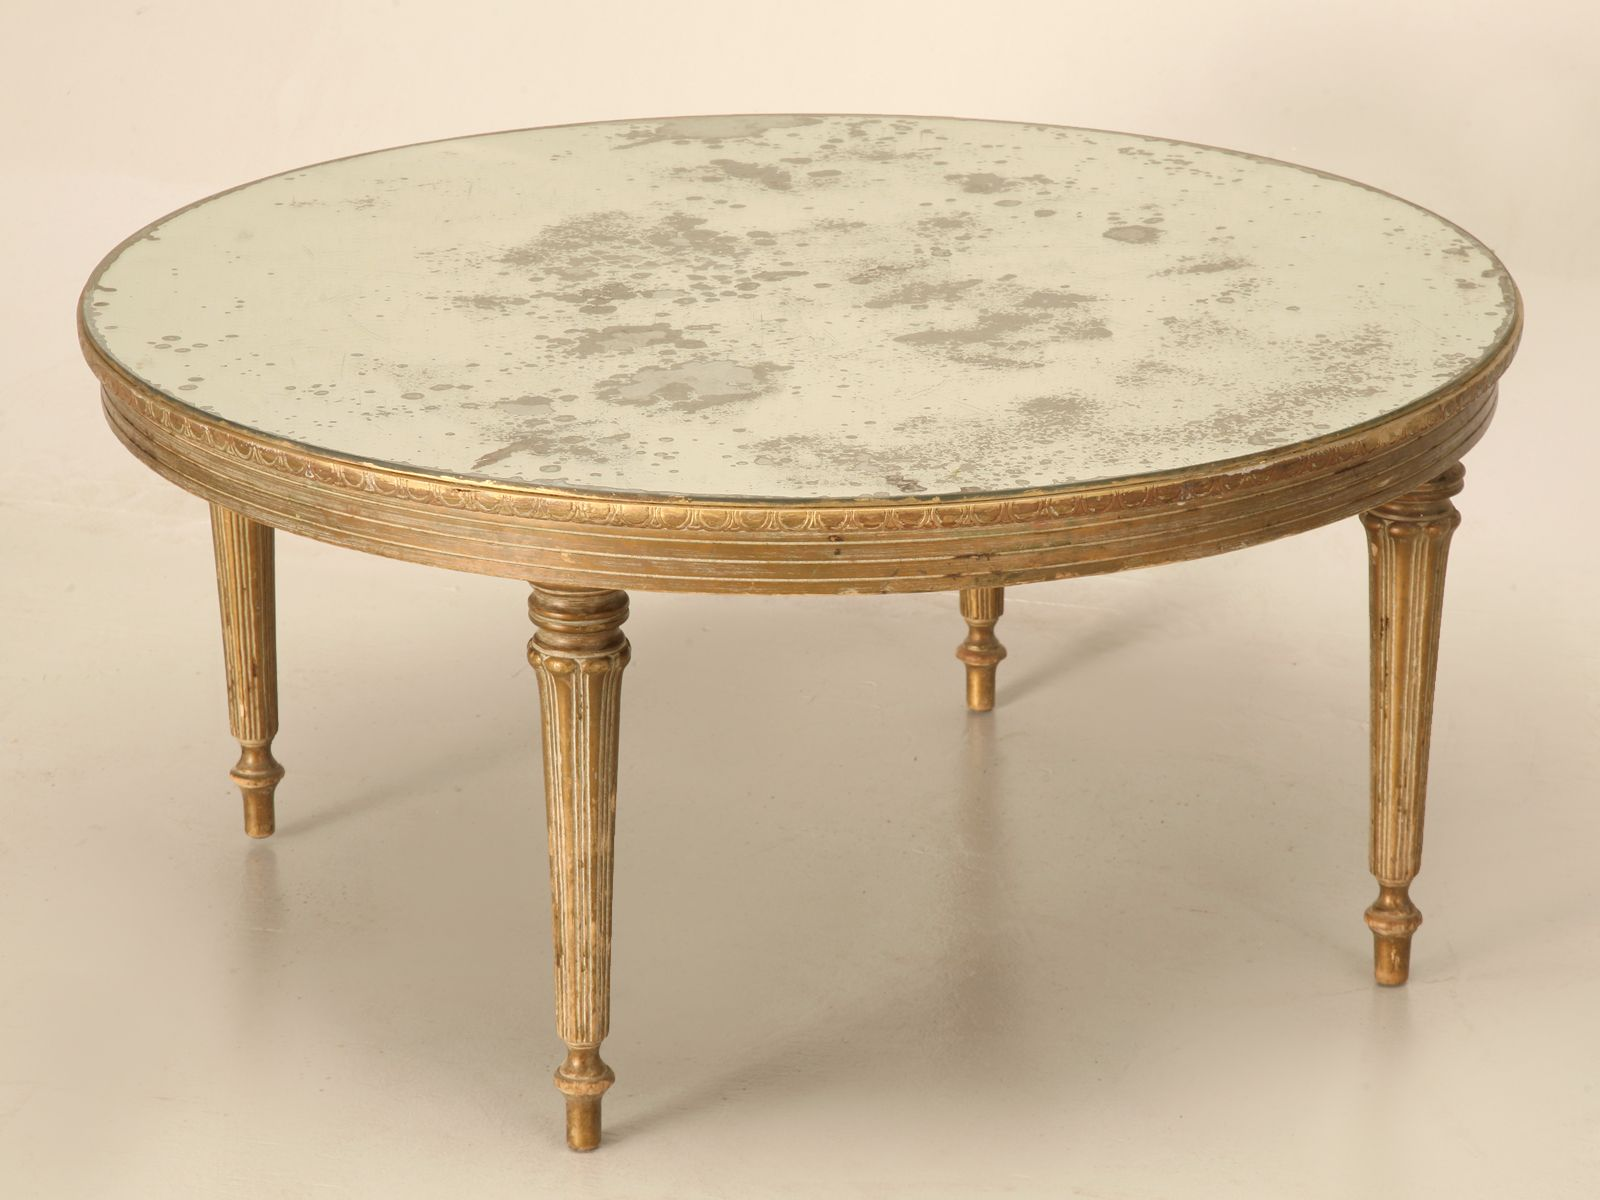 Vintage French Louis XVI Style Gilt and Mirrored Coffee Table